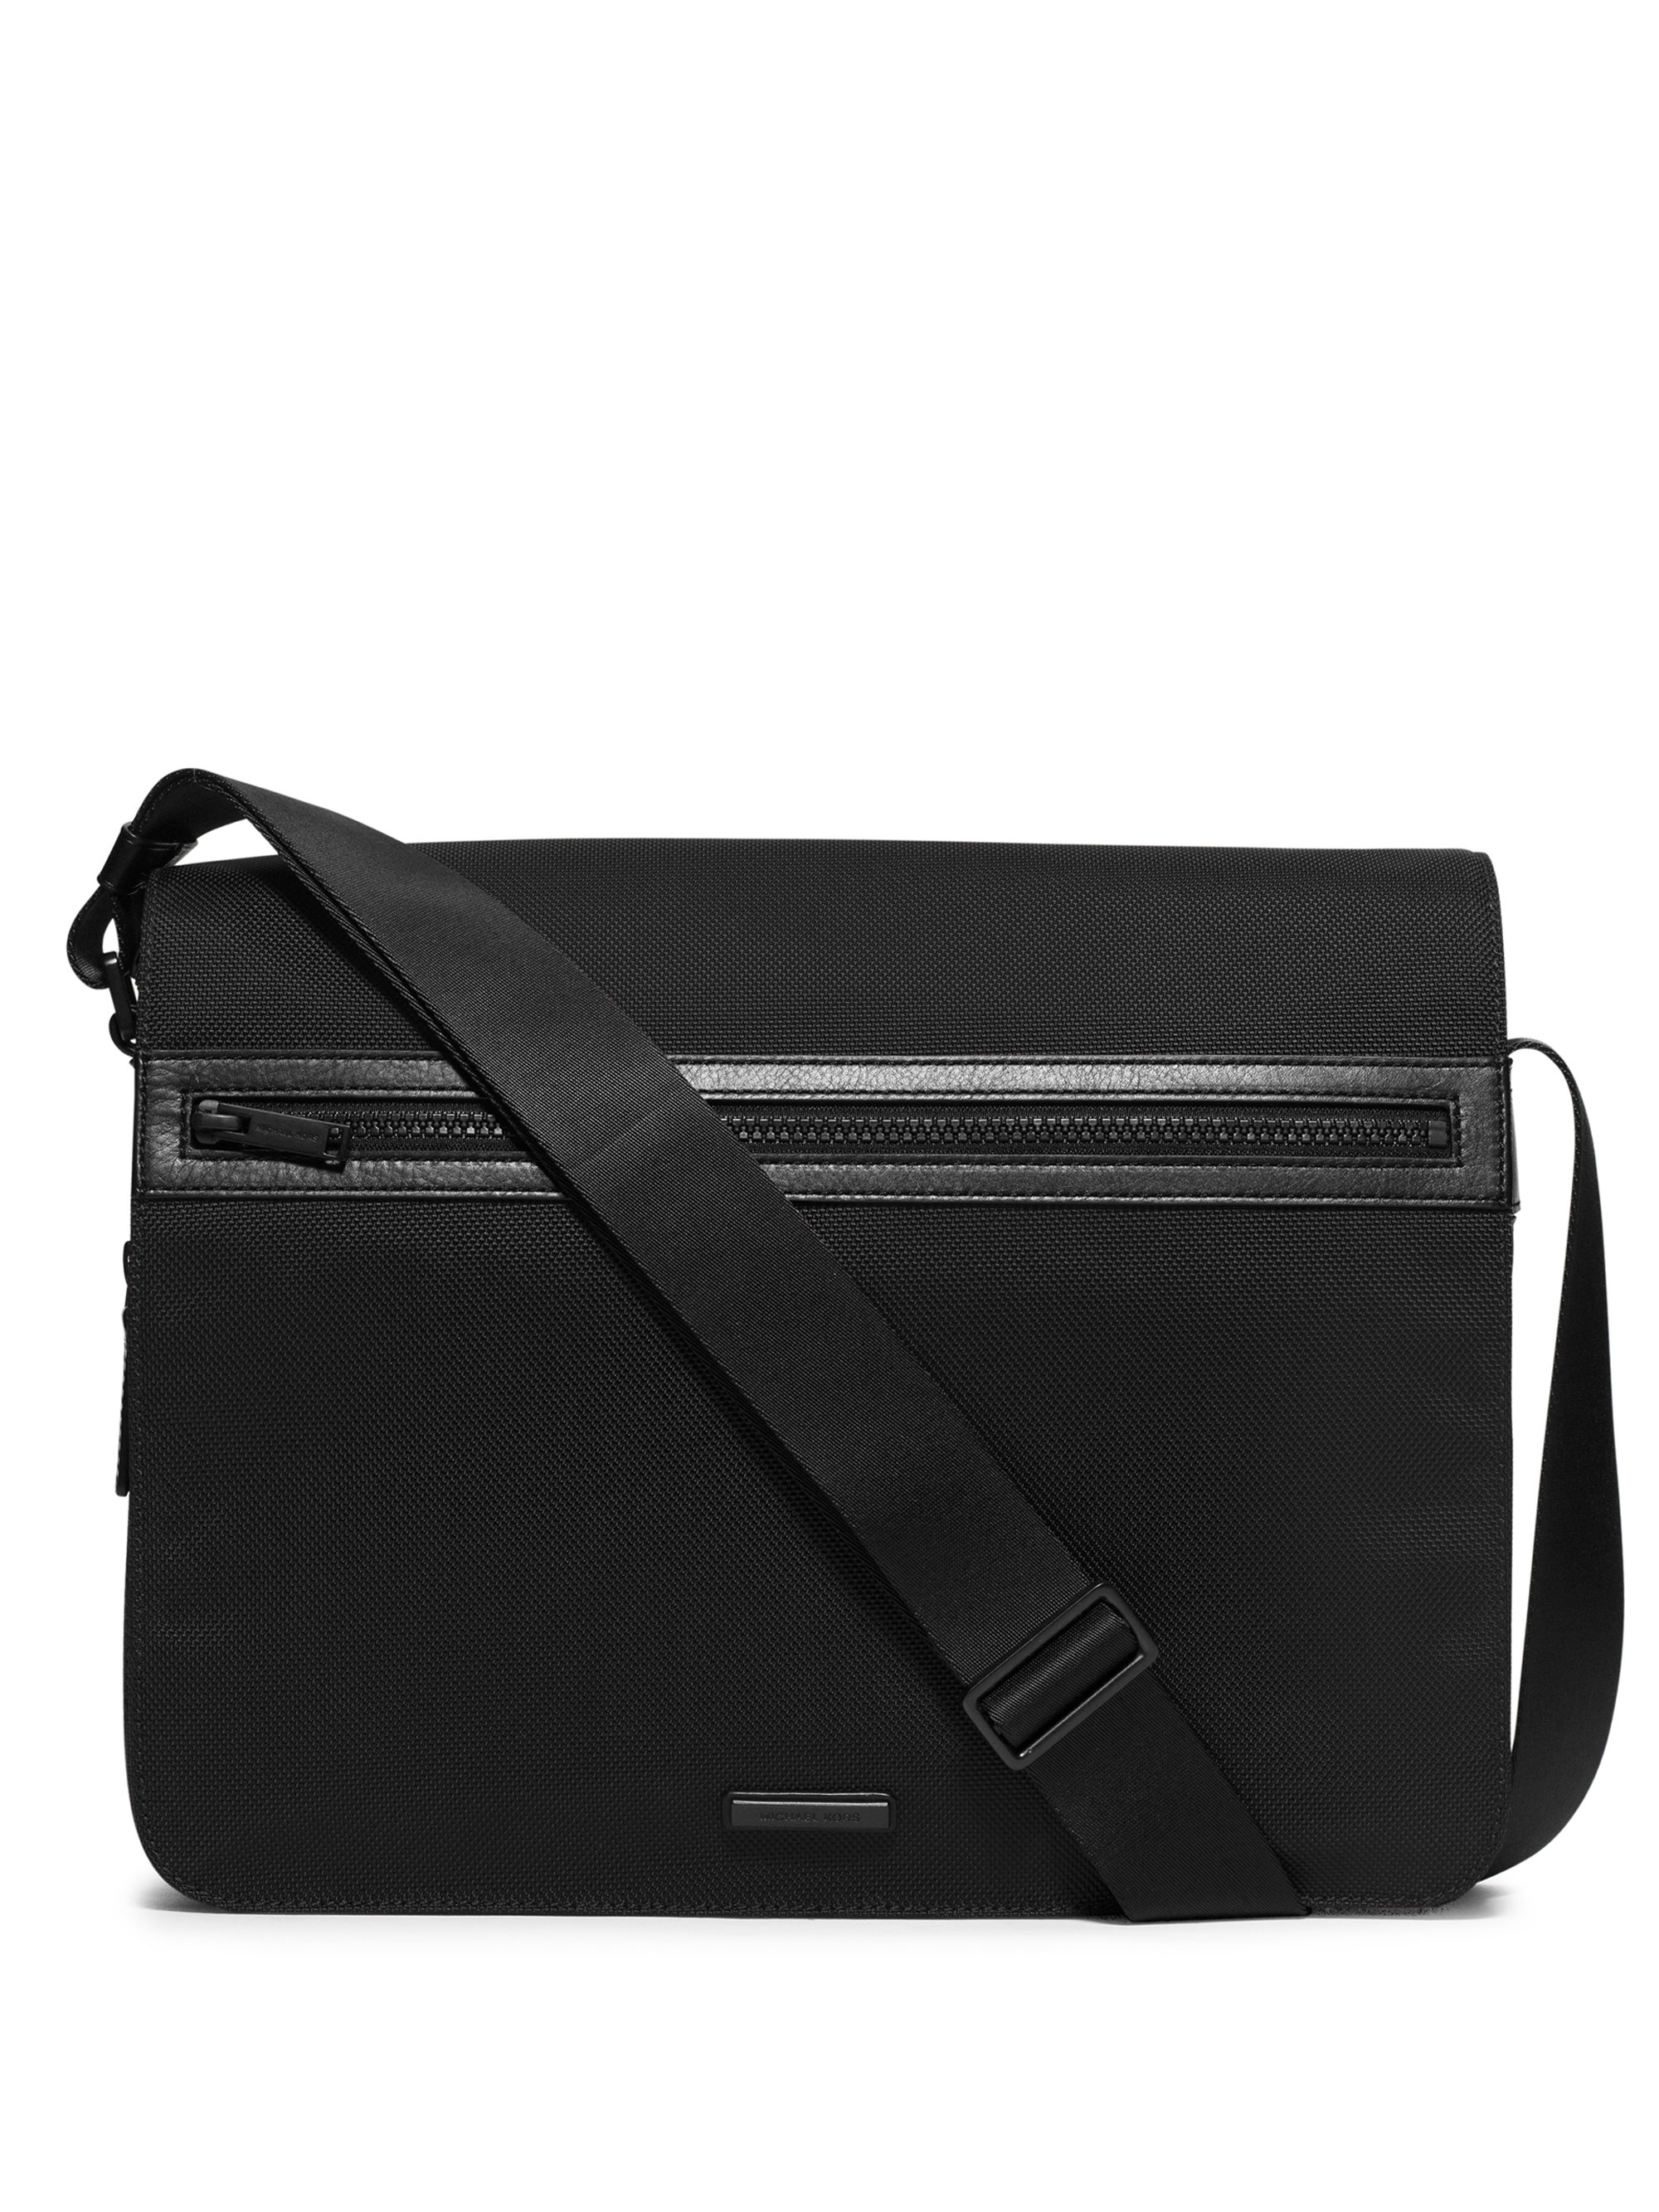 Nylon Messenger Bag Black 38